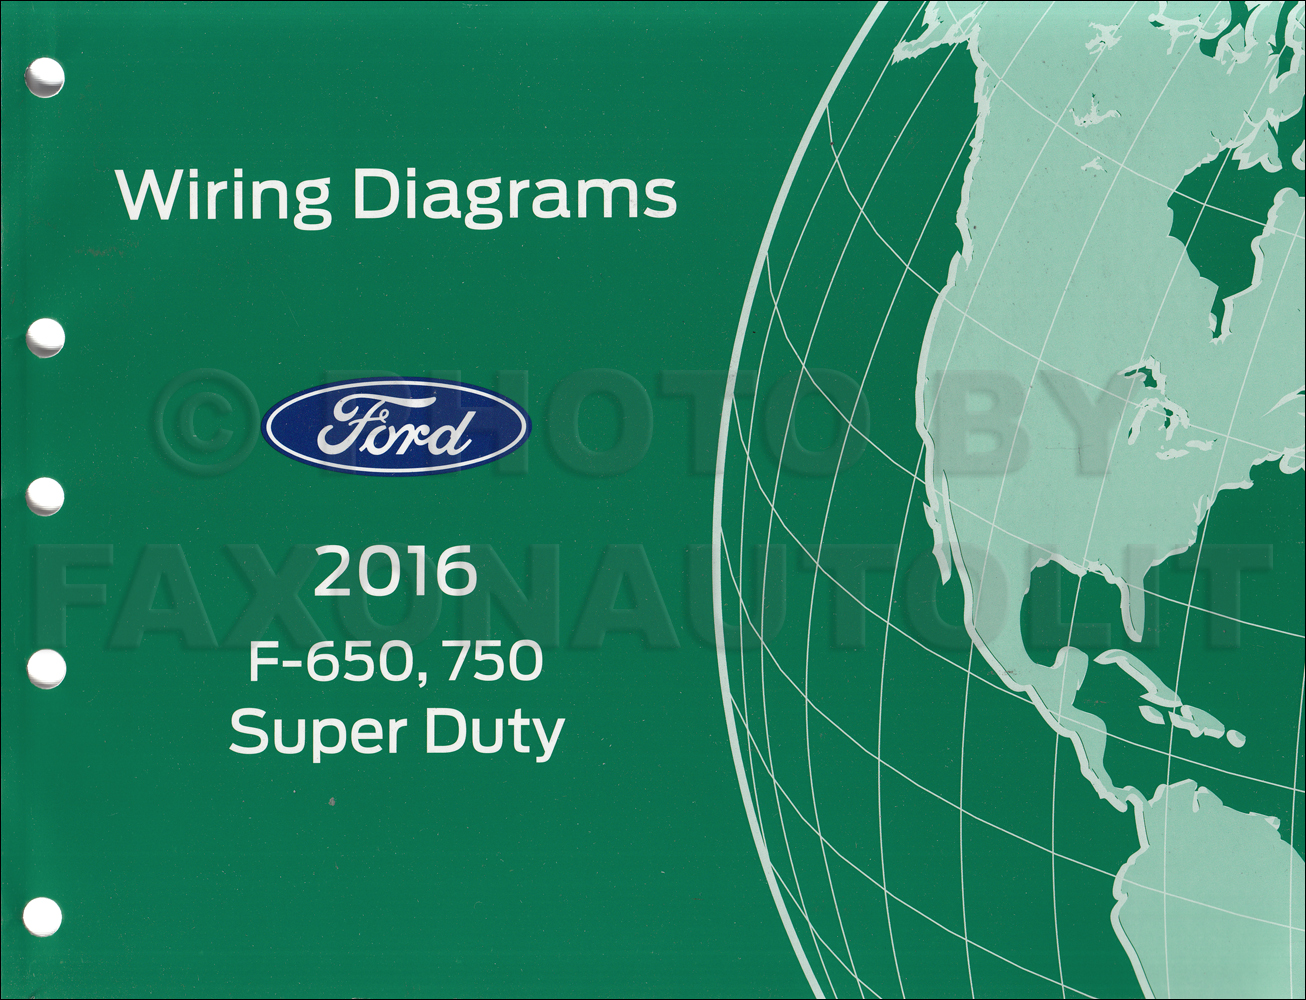 2016FordF650750SuperDutyOWD 2016 ford f 650 and f 750 super duty truck wiring diagram manual f750 wiring diagram at panicattacktreatment.co